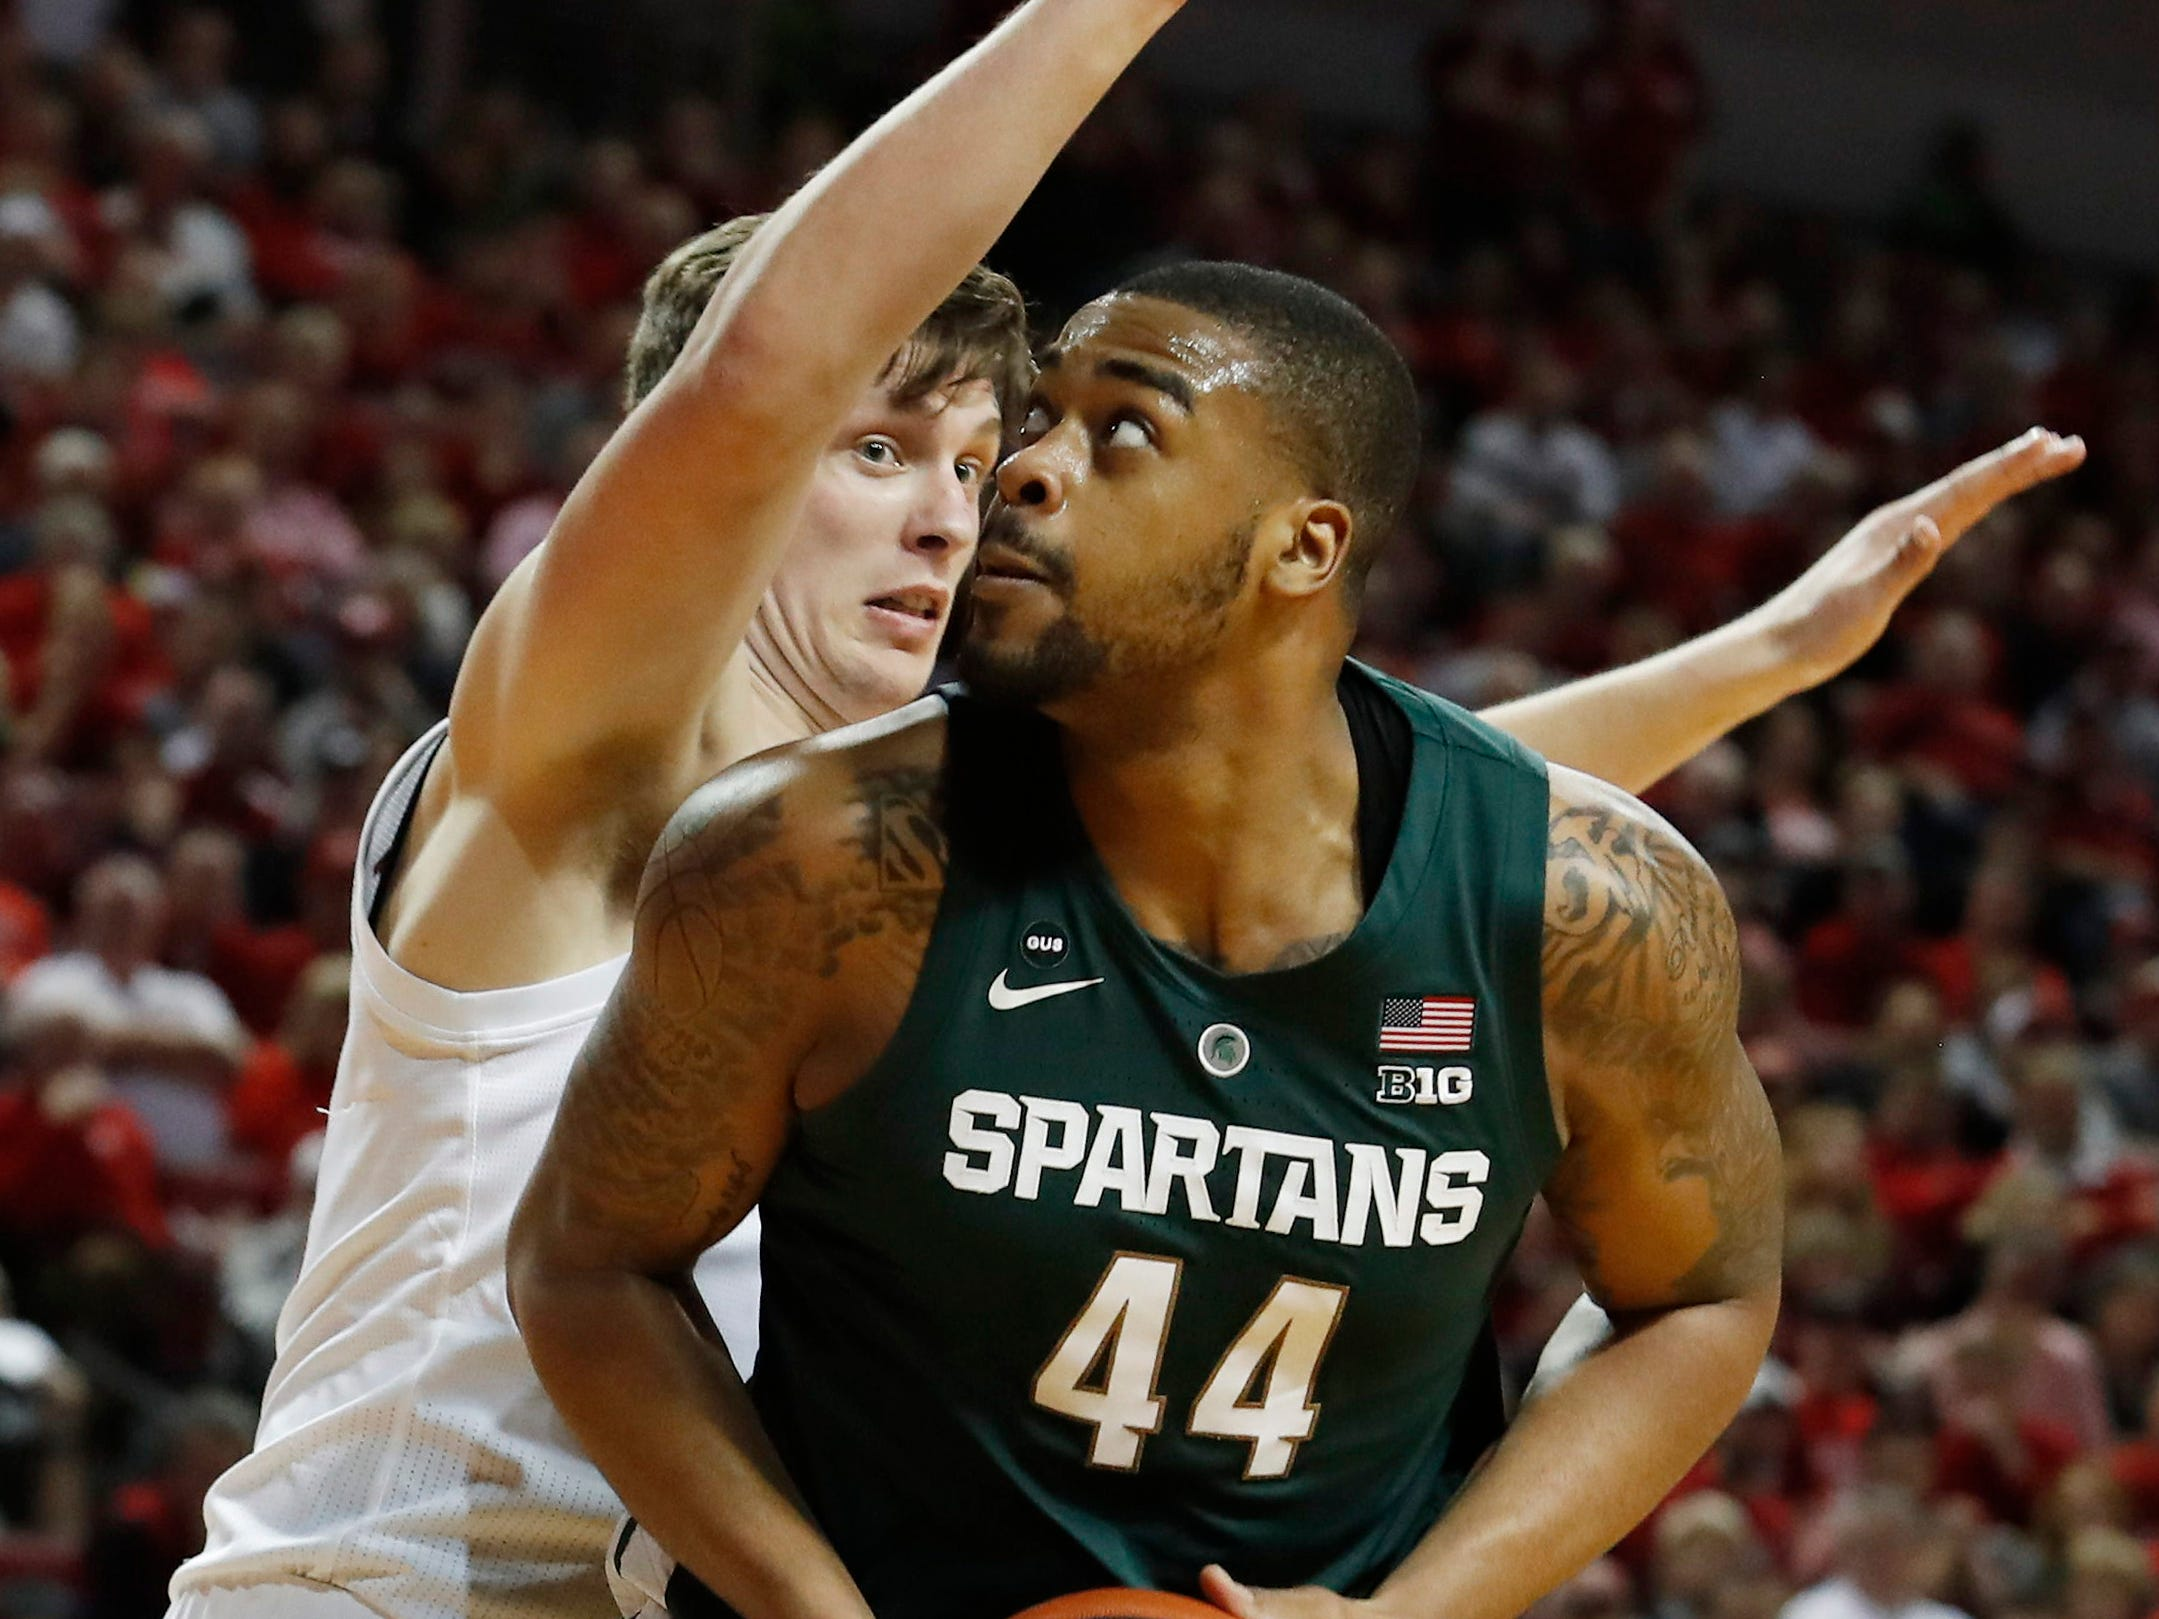 Michigan State Spartans forward Nick Ward (44) controls the ball in front of Nebraska Cornhuskers forward Tanner Borchardt (20) in the second half at Pinnacle Bank Arena. Michigan State won 70-64.